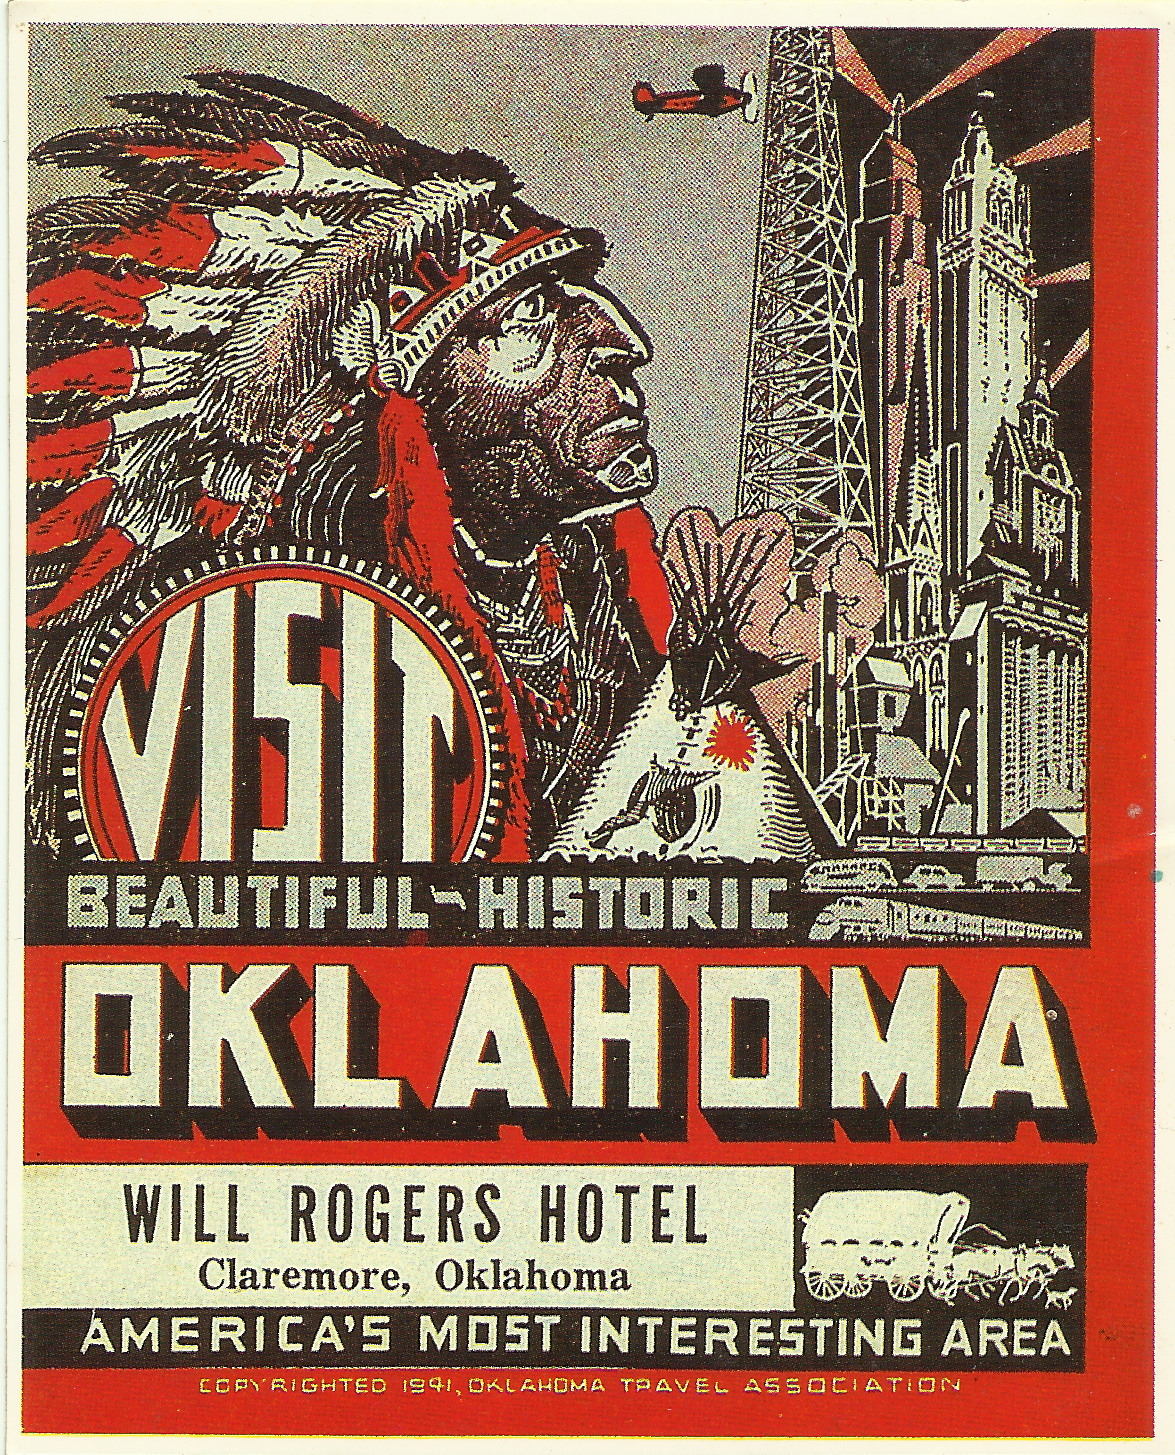 Will Rogers Hotel luggage sticker - 524 West Will Rogers Boulevard, Claremore, Oklahoma U.S.A. - 1941